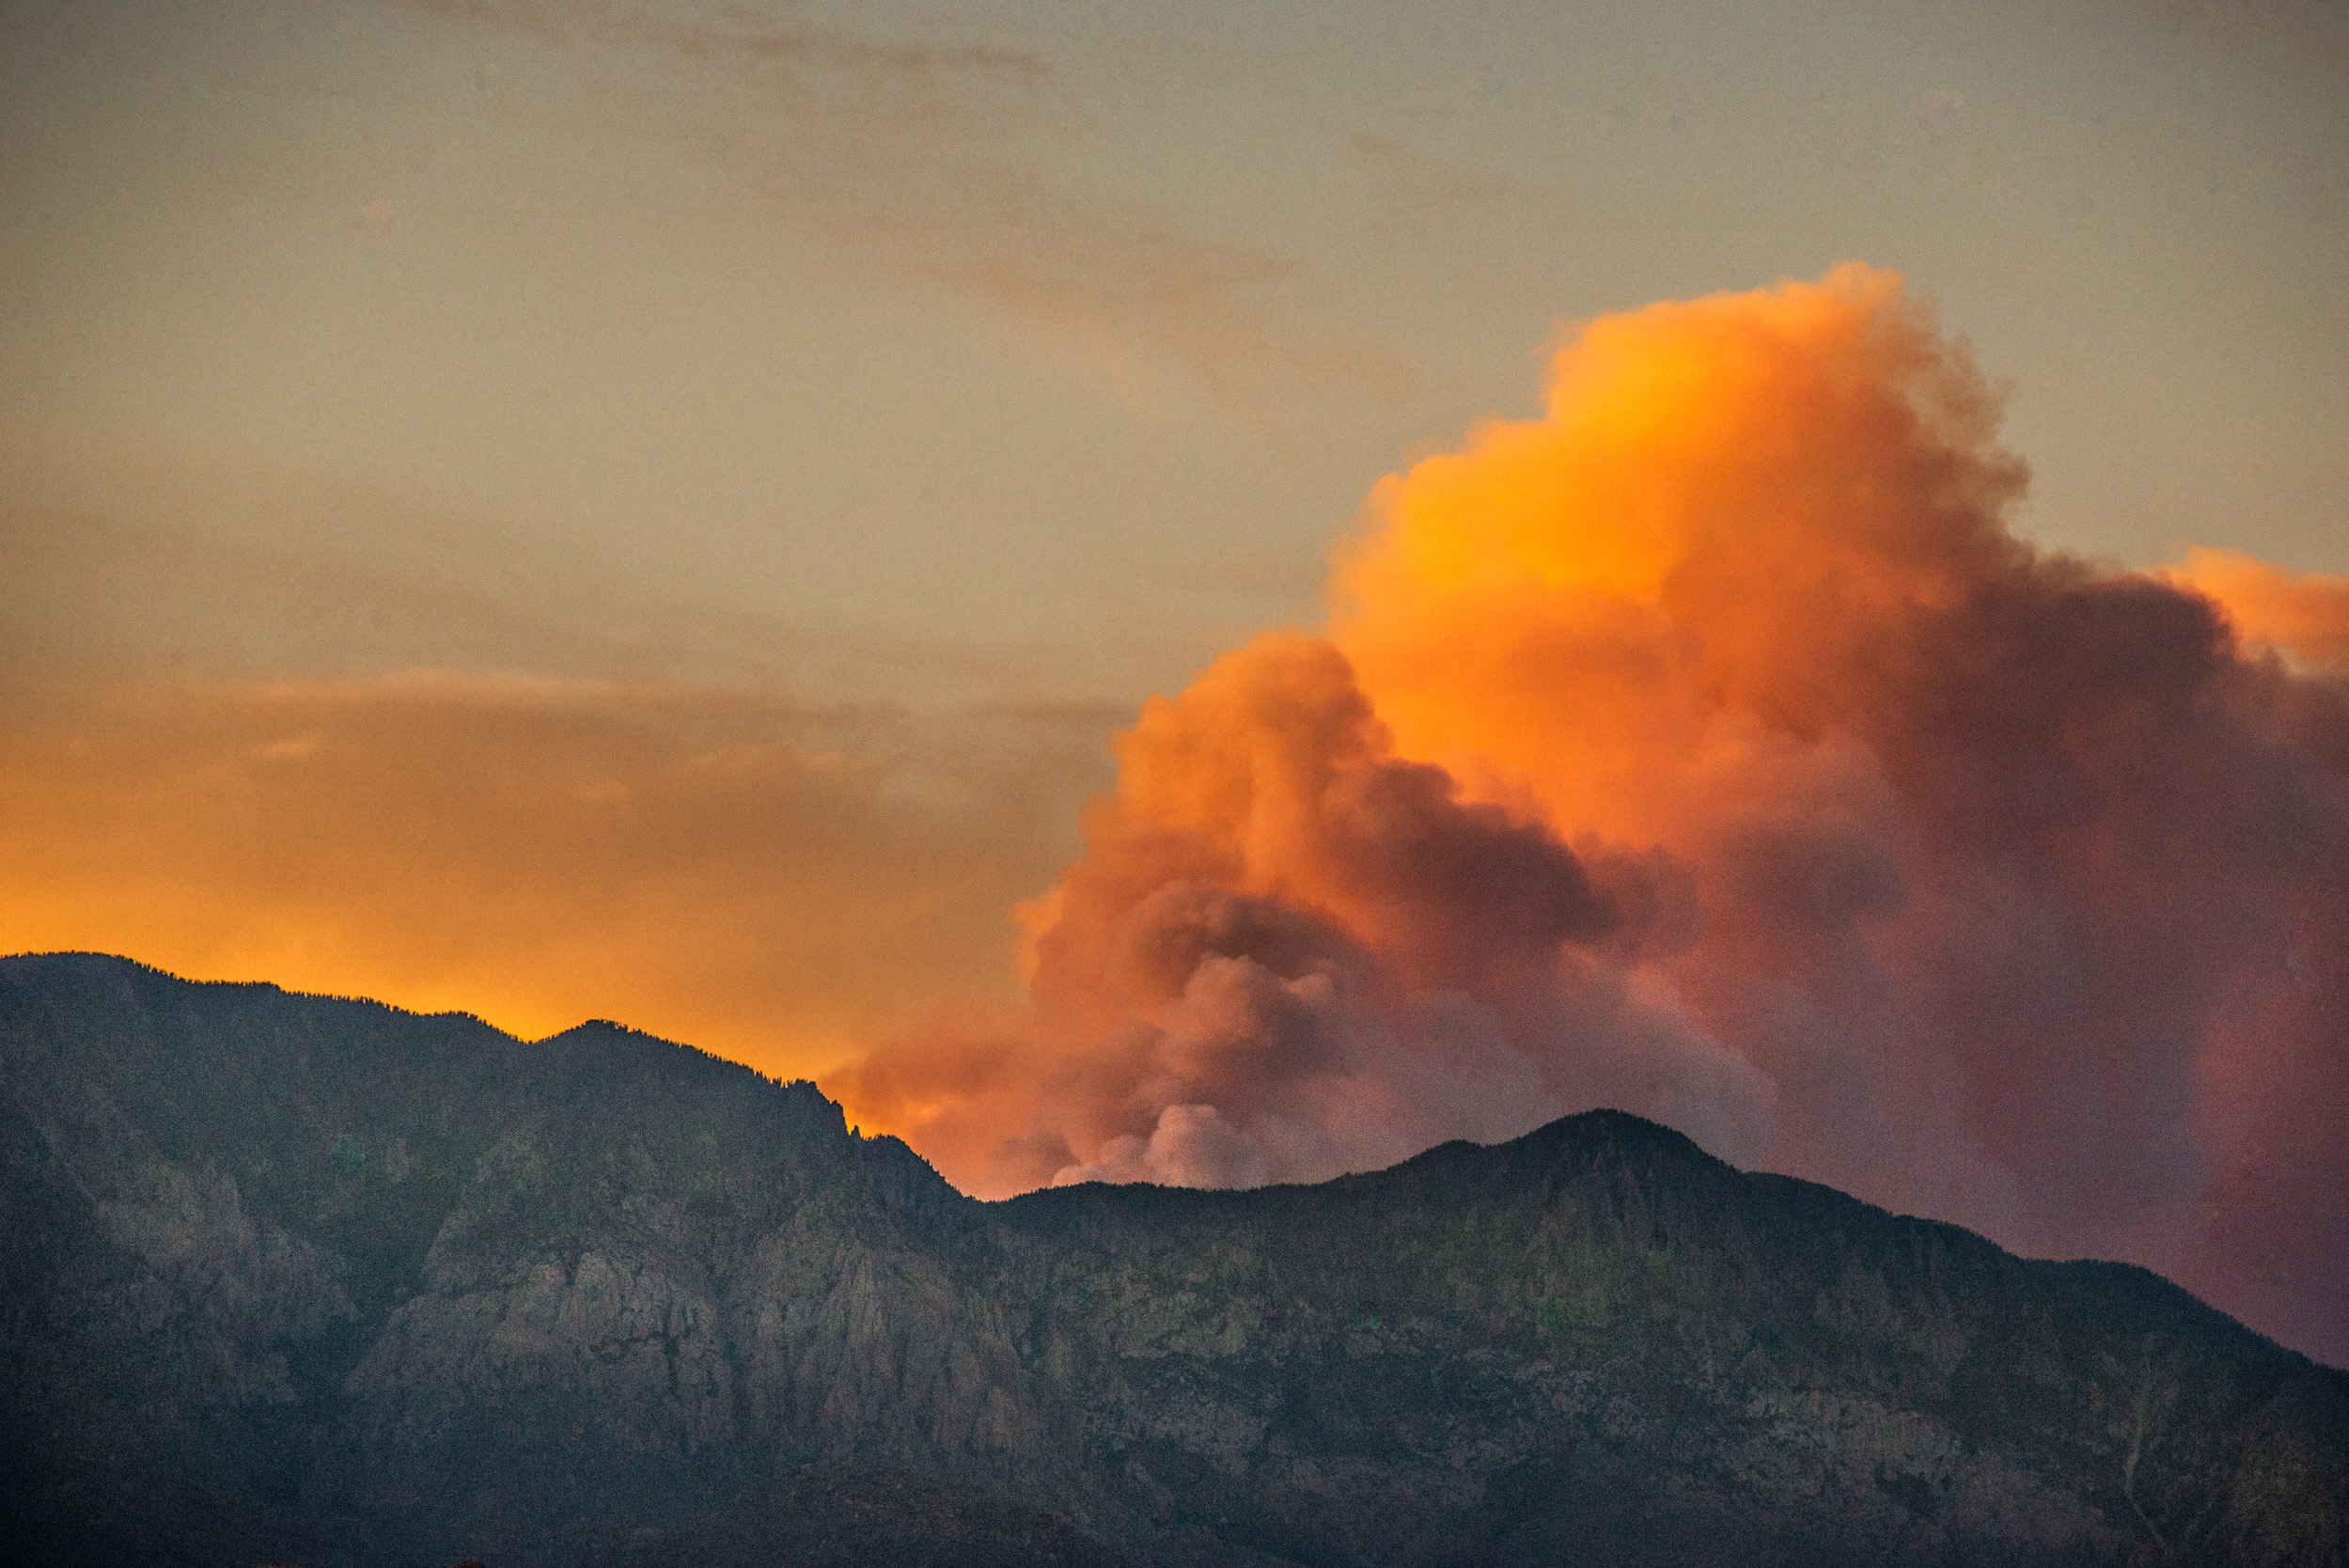 Fire and Mountain from Saint George, Utah © Robert Welkie 2018